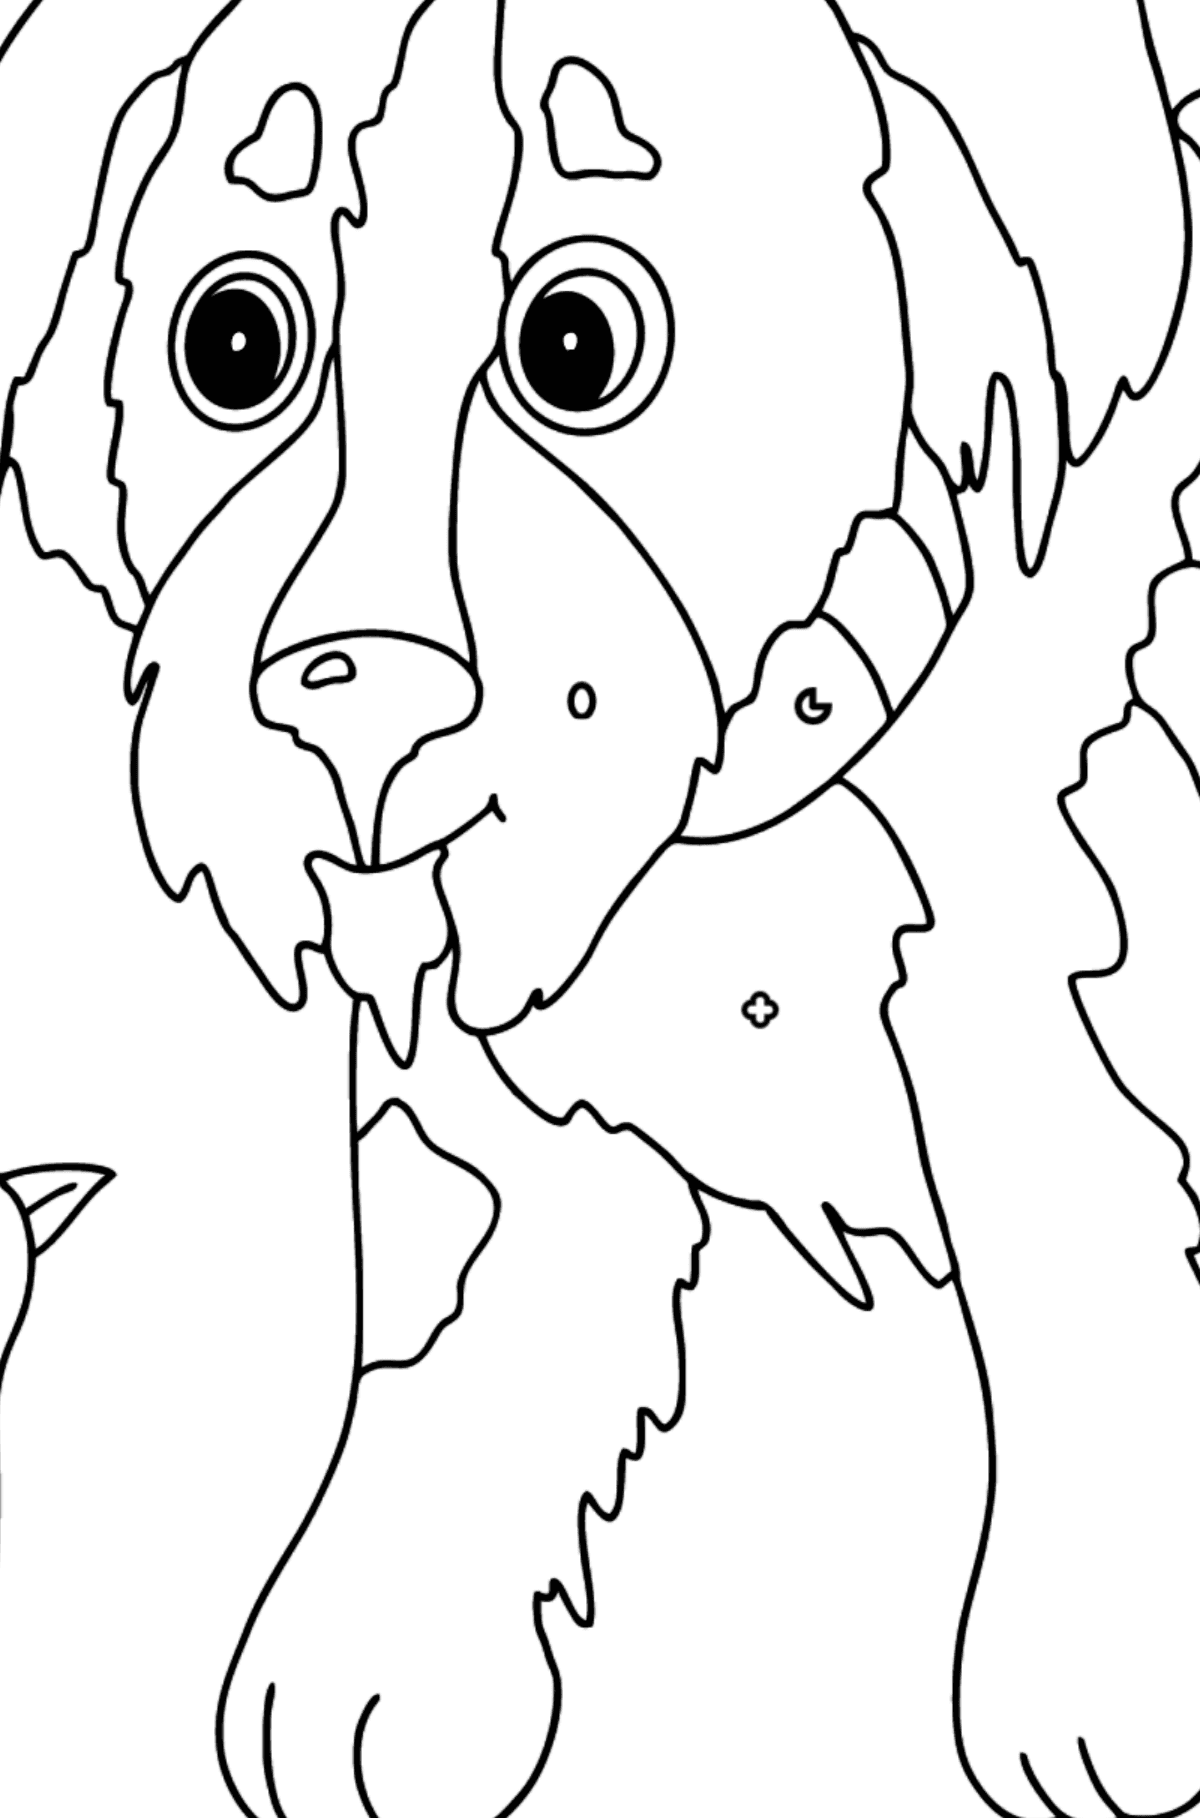 Coloring Page - A Dog is Talking to a Bird - Coloring by Geometric Shapes for Kids